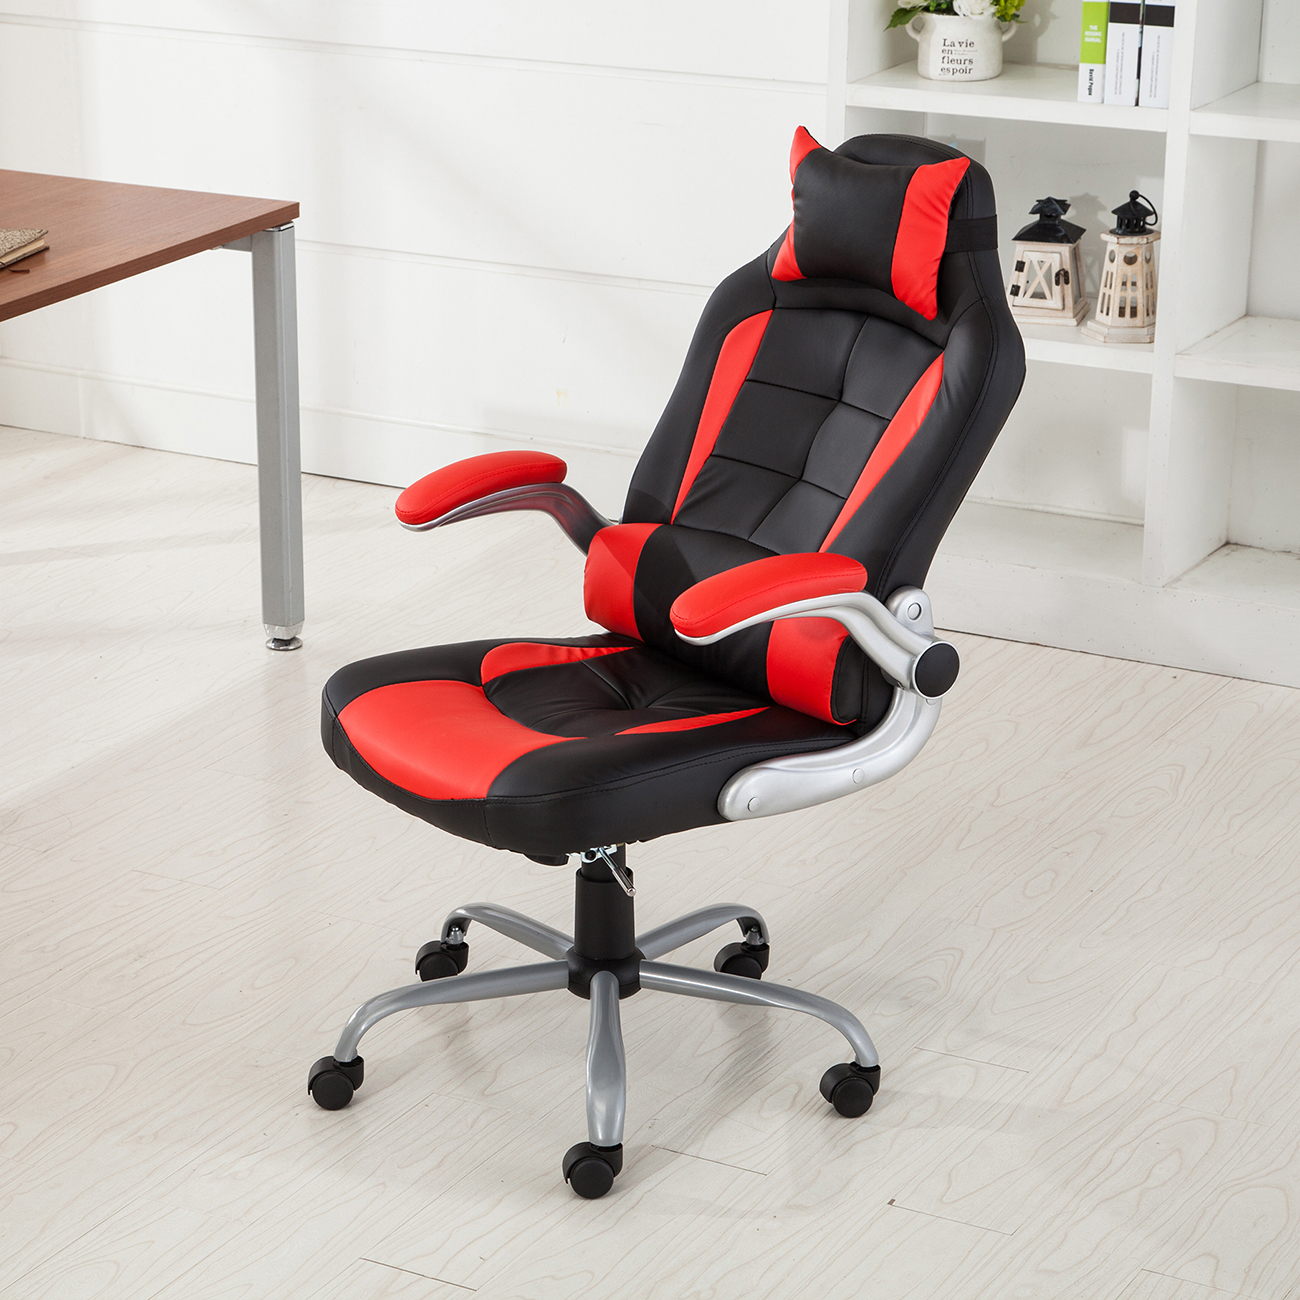 gaming chair ebay tommy bahama backpack cooler high back racing style reclining office